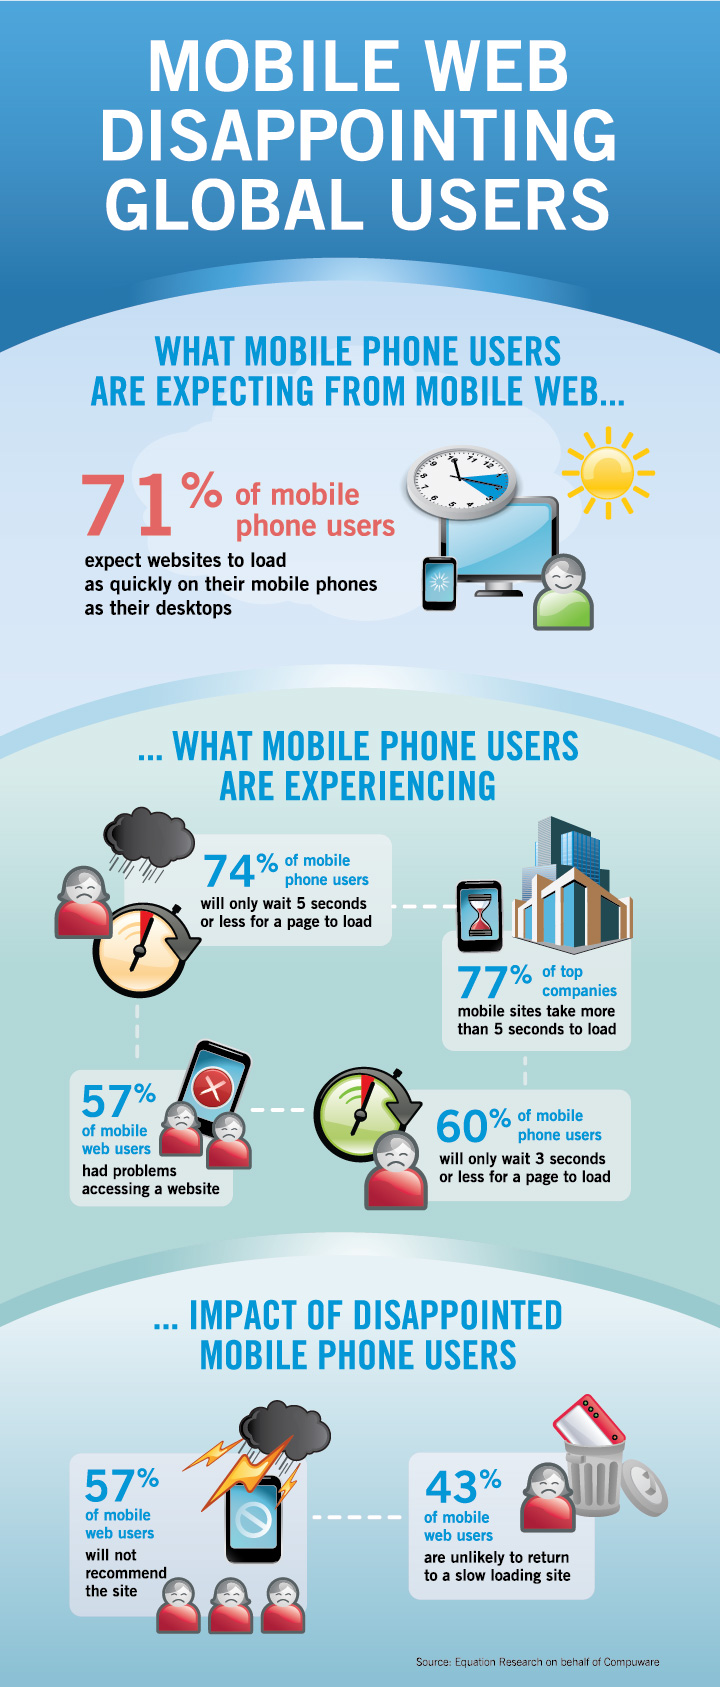 Mobile Web Disappointing Global Users, An Infographic